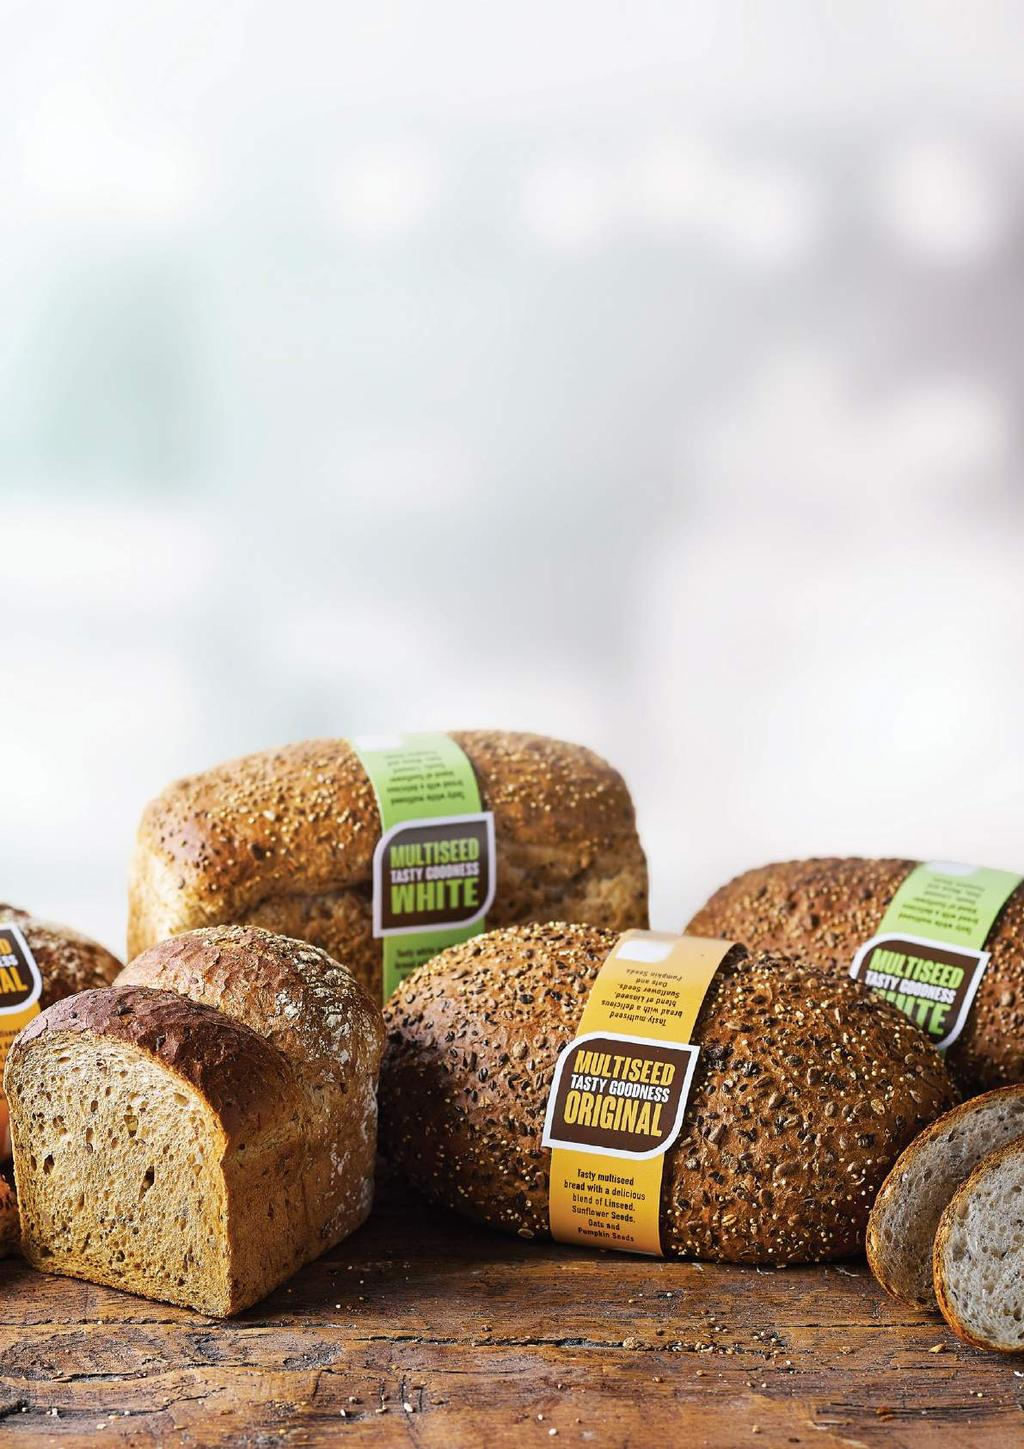 Tasty multiseed bread with a delicious combination of sunflower seeds, linseed, pumpkin seeds and oats.